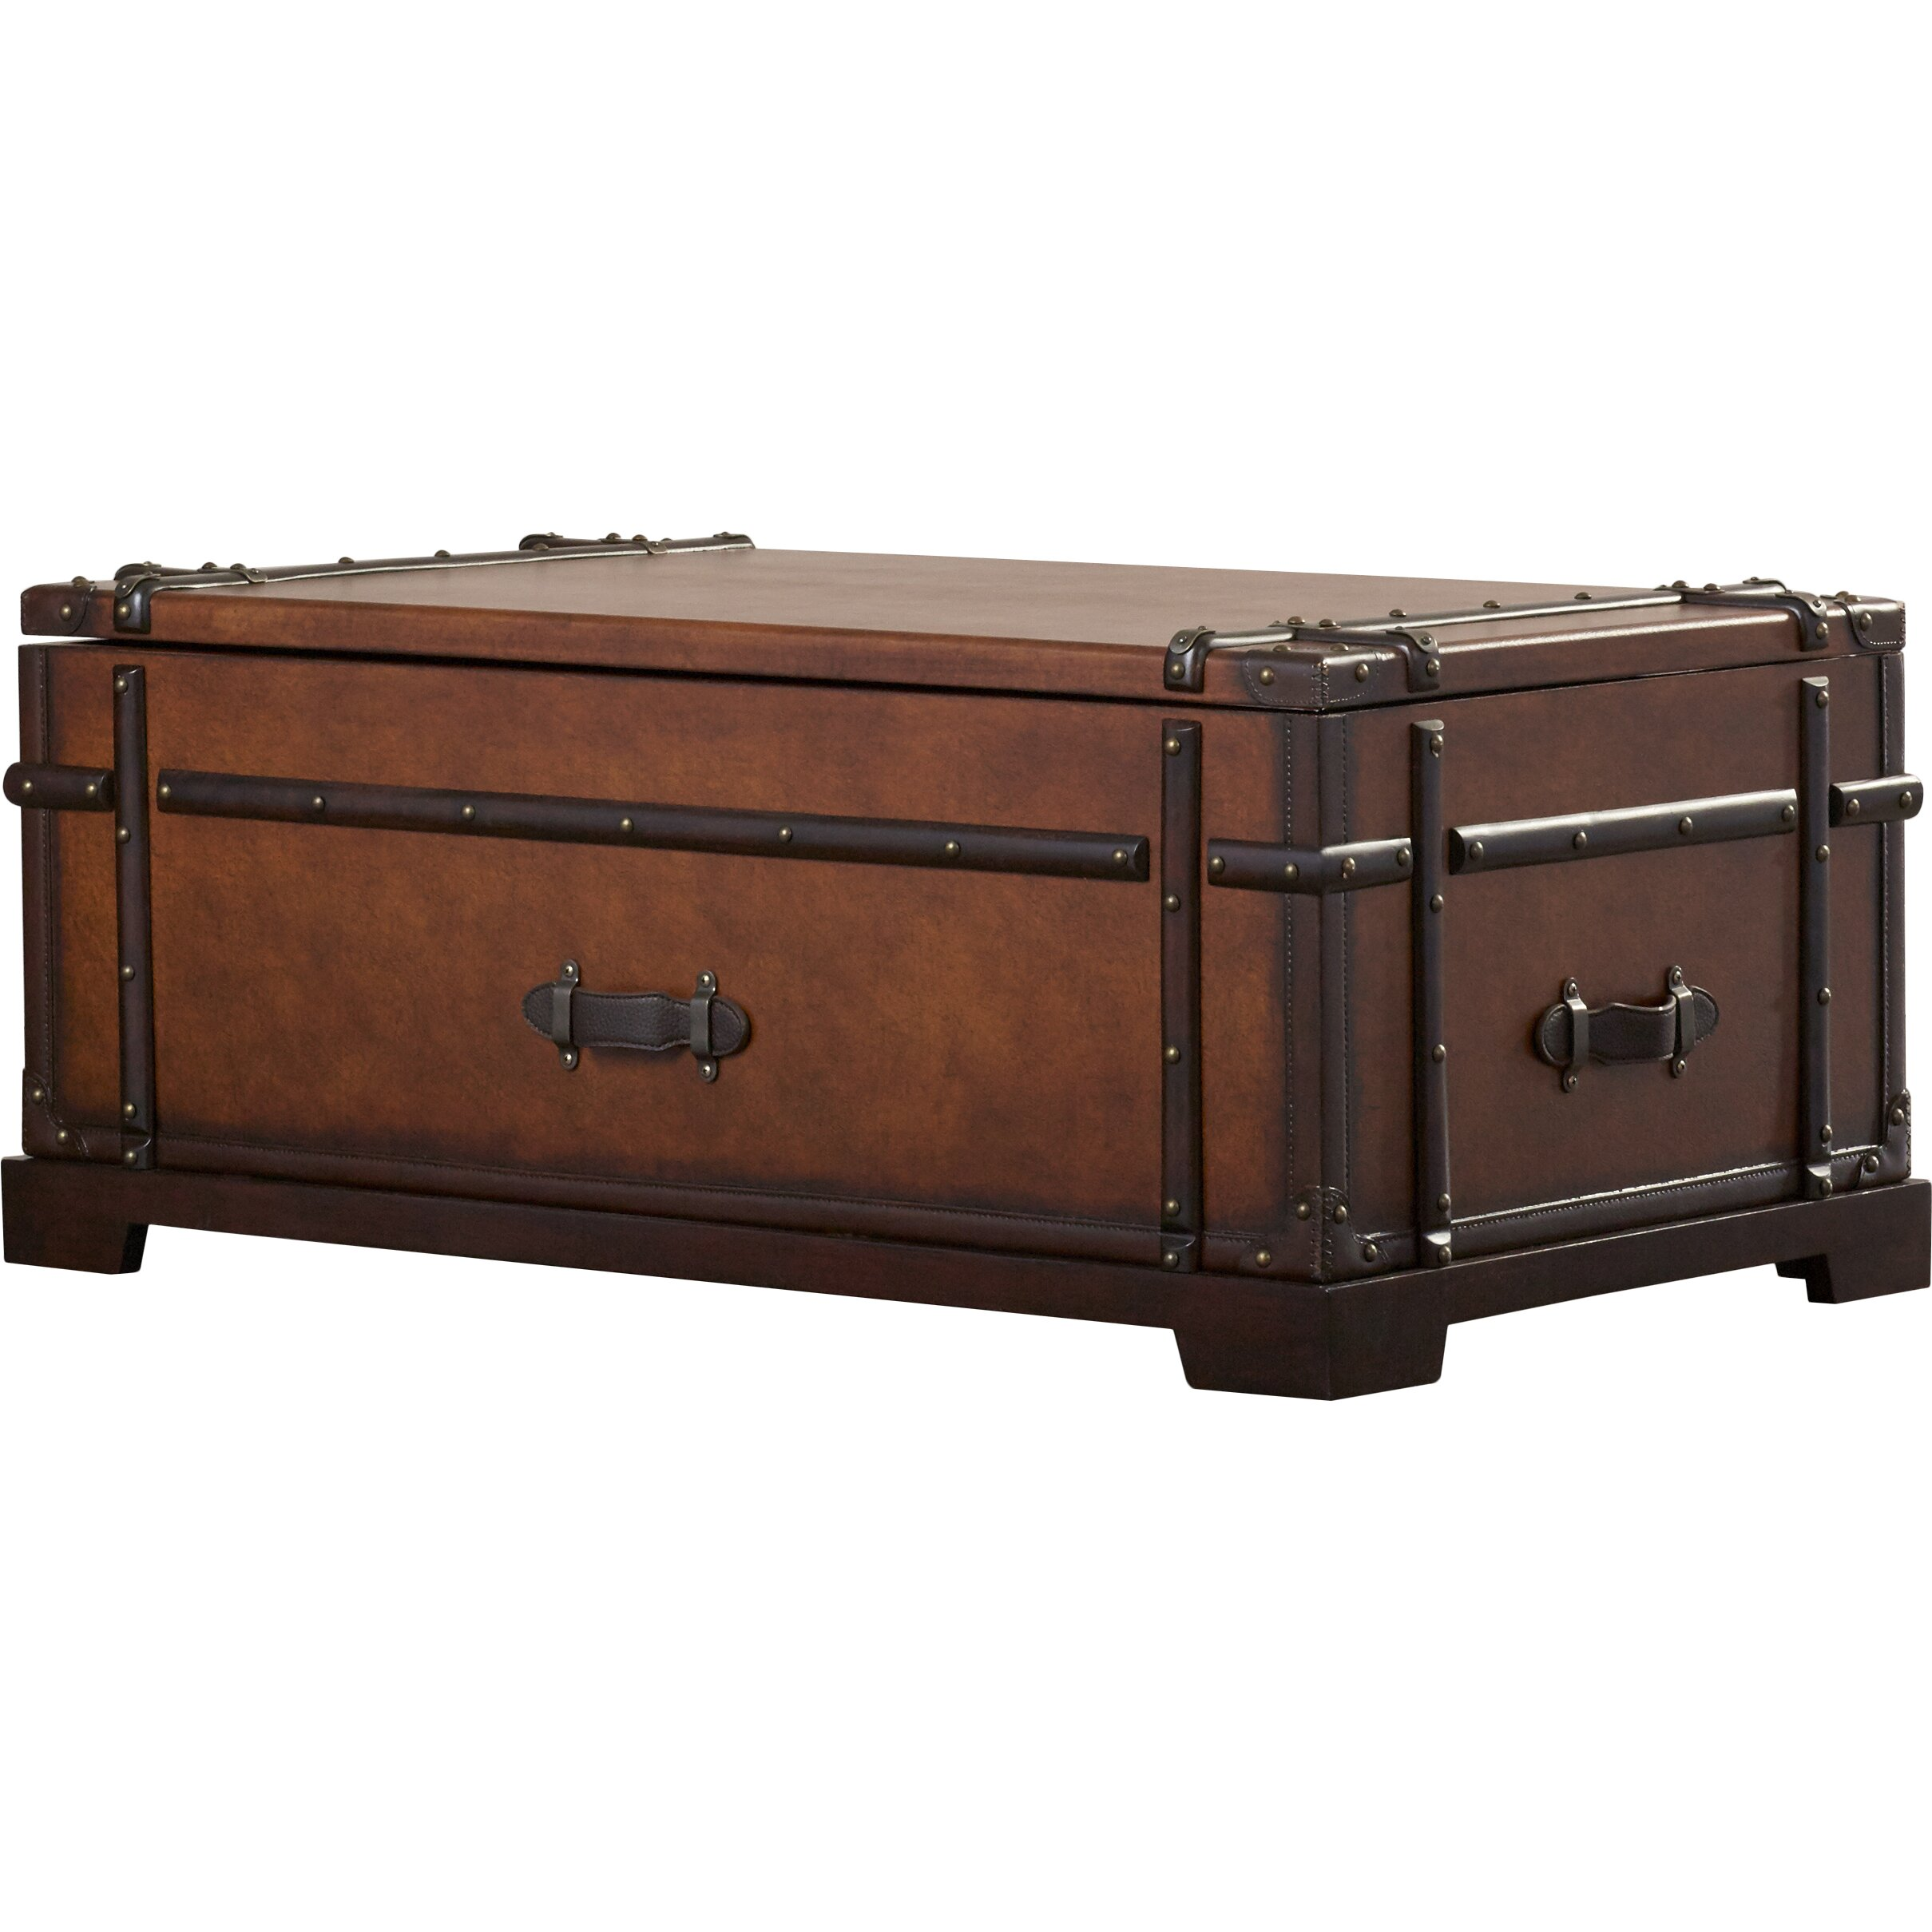 Darby home co delavan steamer coffee table trunk with lift top reviews wayfair Trunks coffee tables